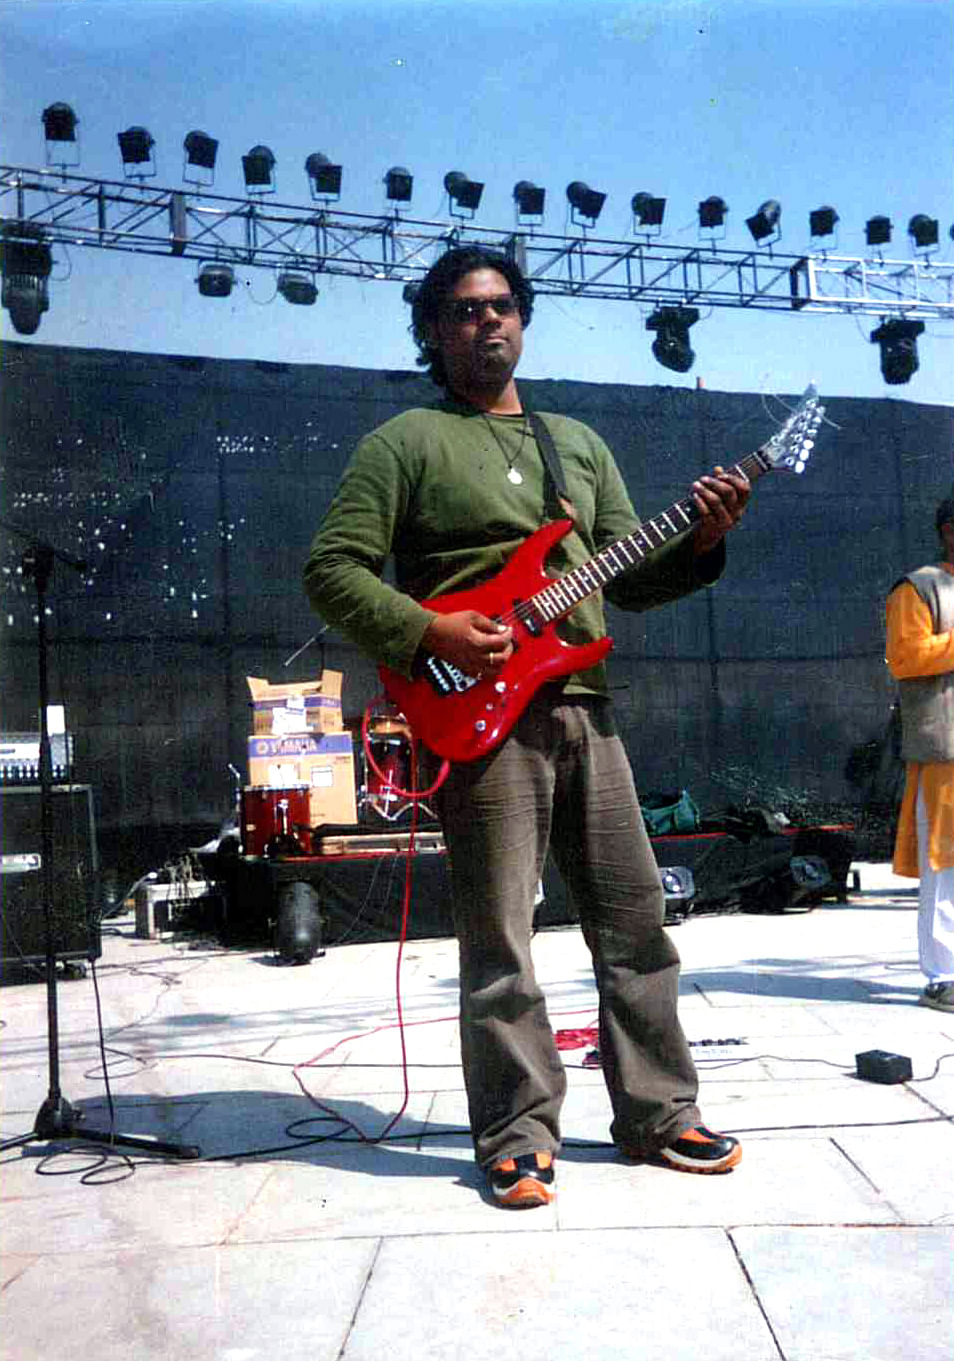 Sumit was part of a band called 'Nakshatra' from 1998 to 2007